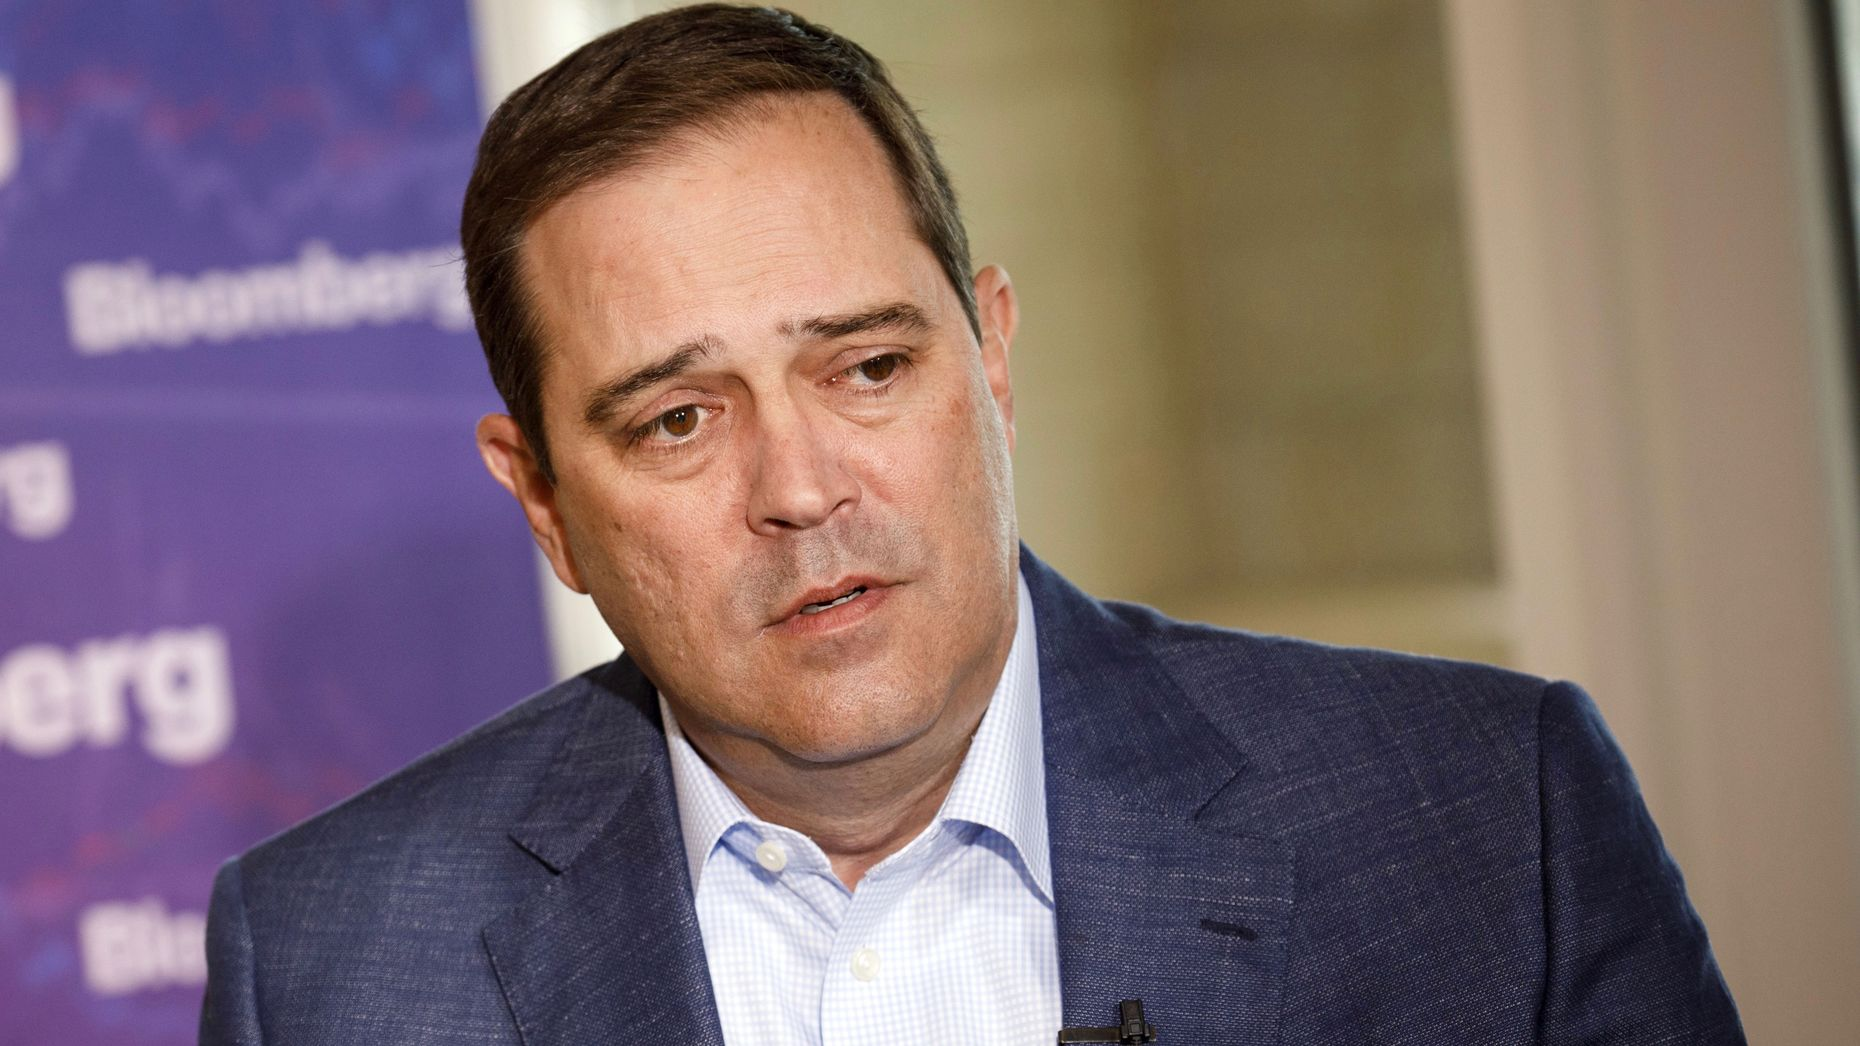 Cisco CEO Chuck Robbins. Photo by Bloomberg